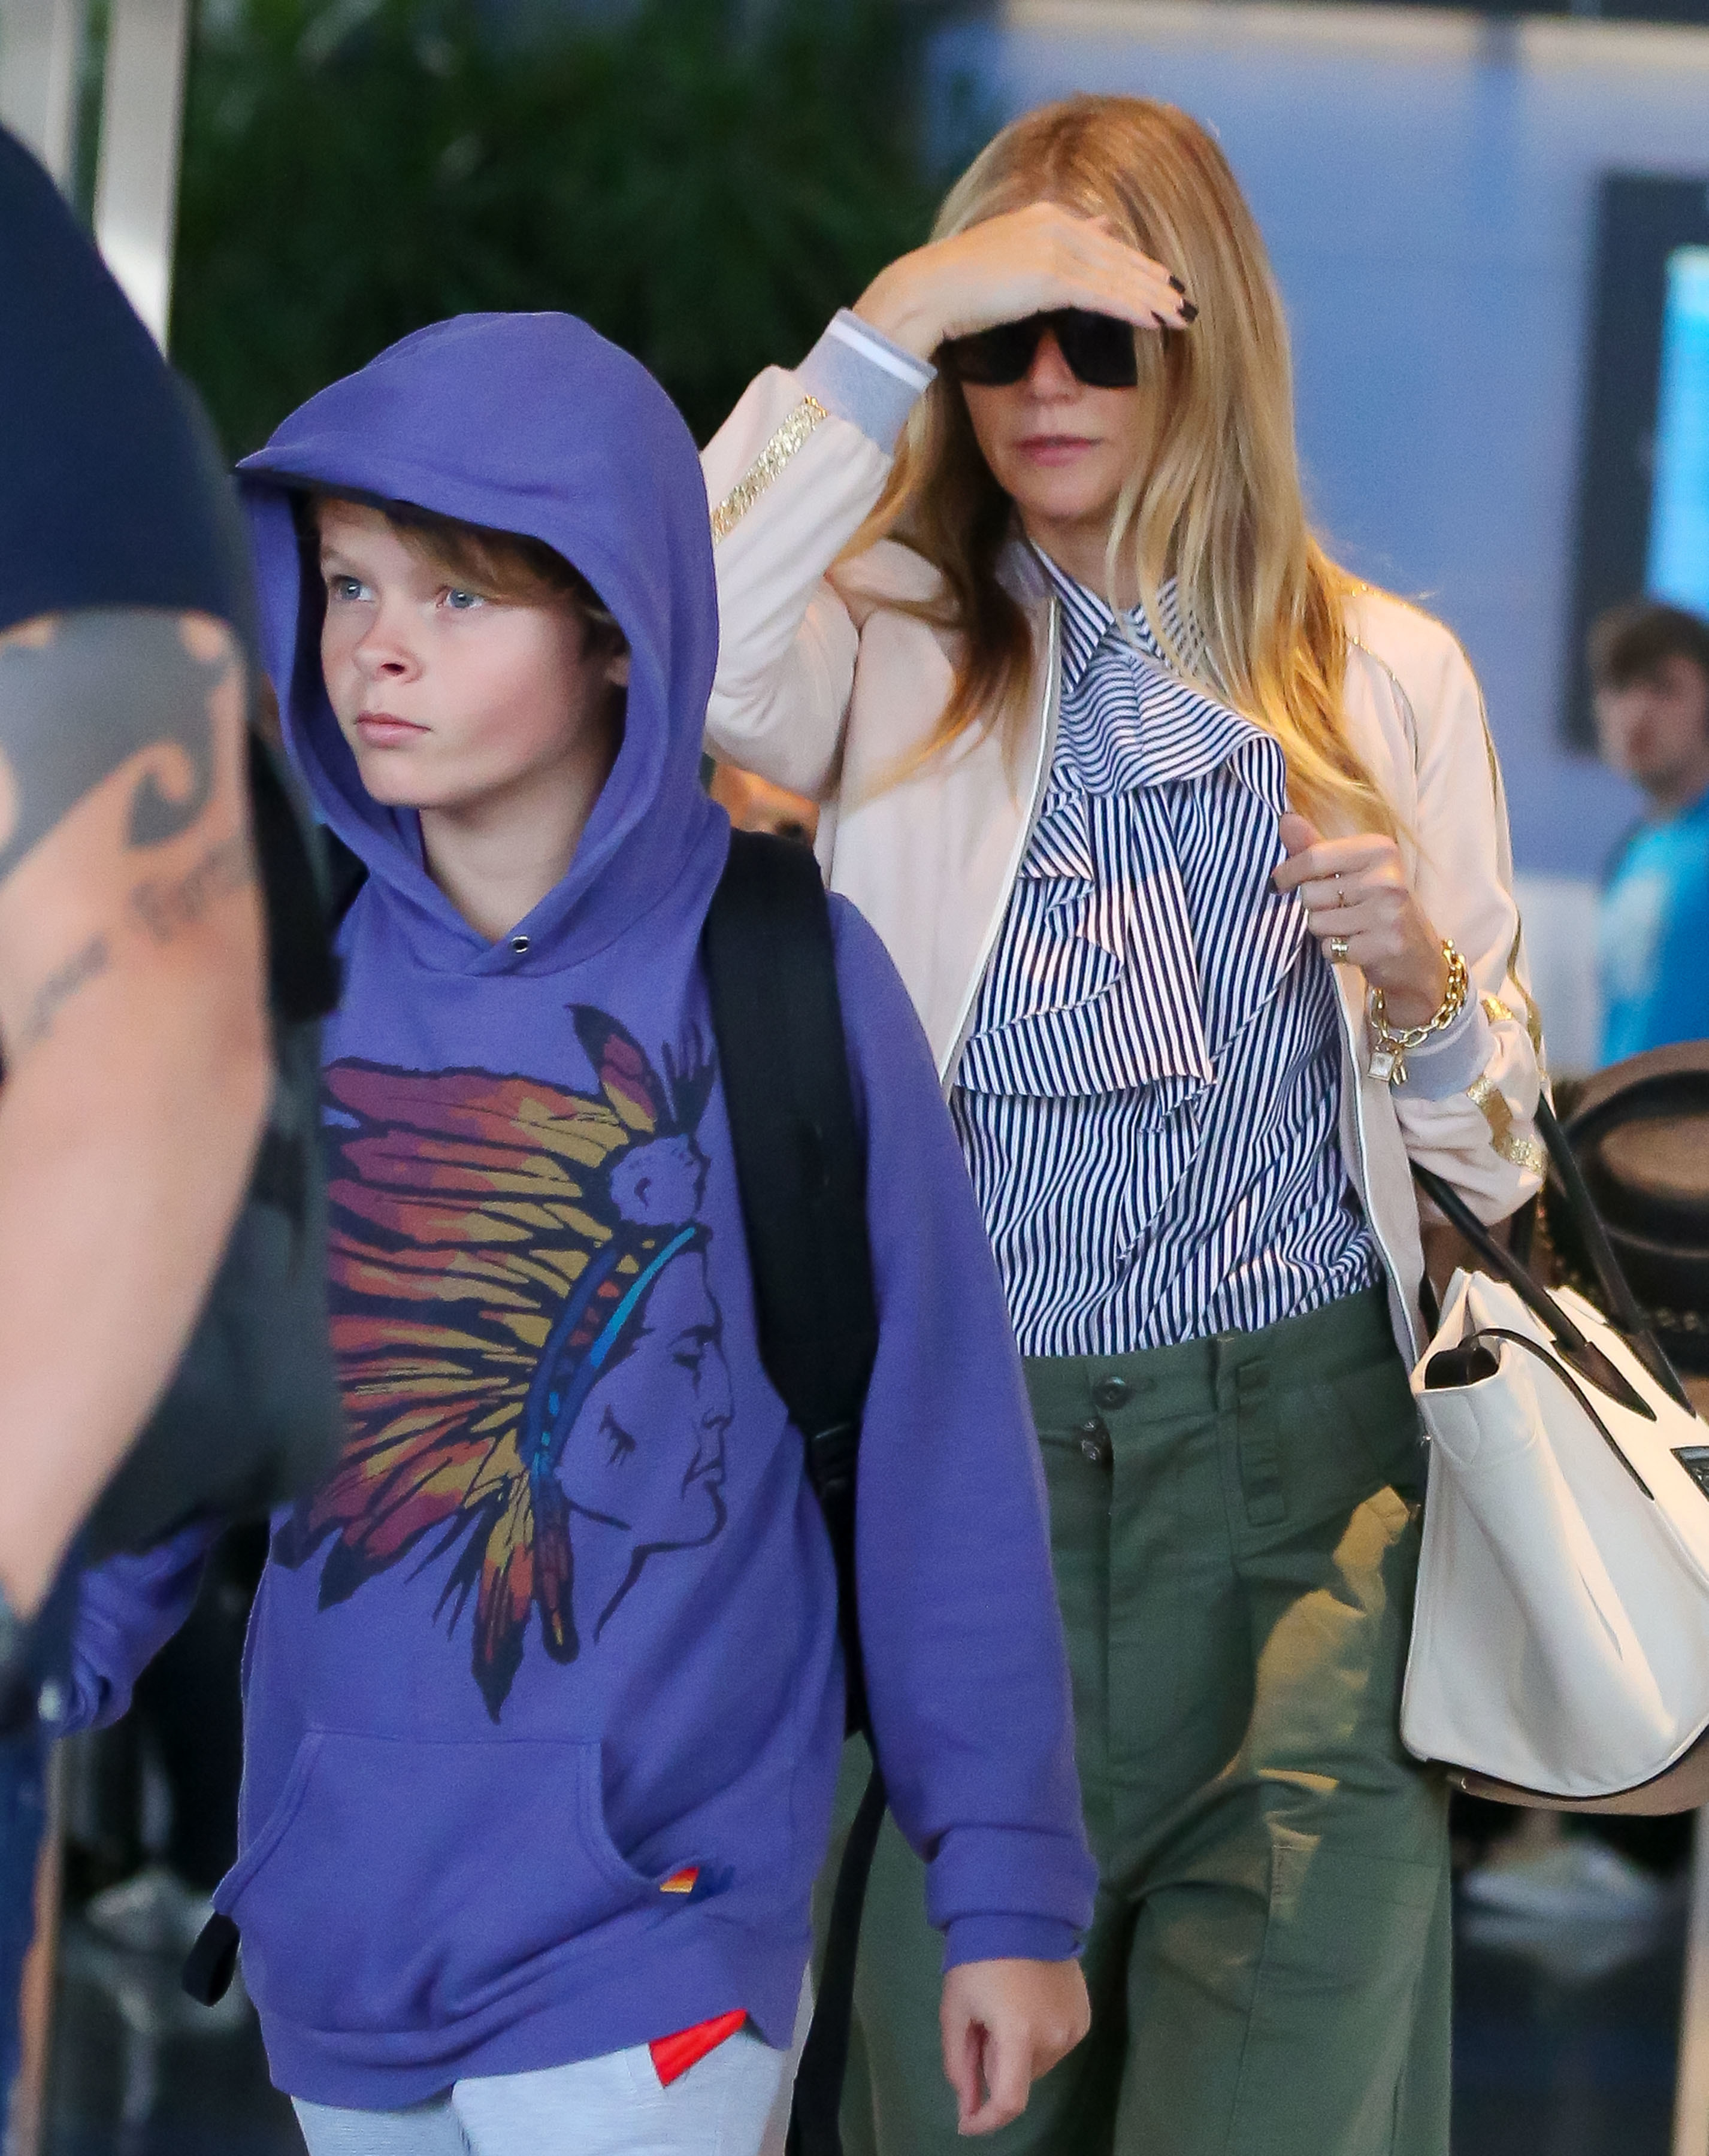 Gwyneth Paltrow and son Moses Martin arrived at JFK Airport in New York City after a fun vacation in Spain on June 28, 2017.